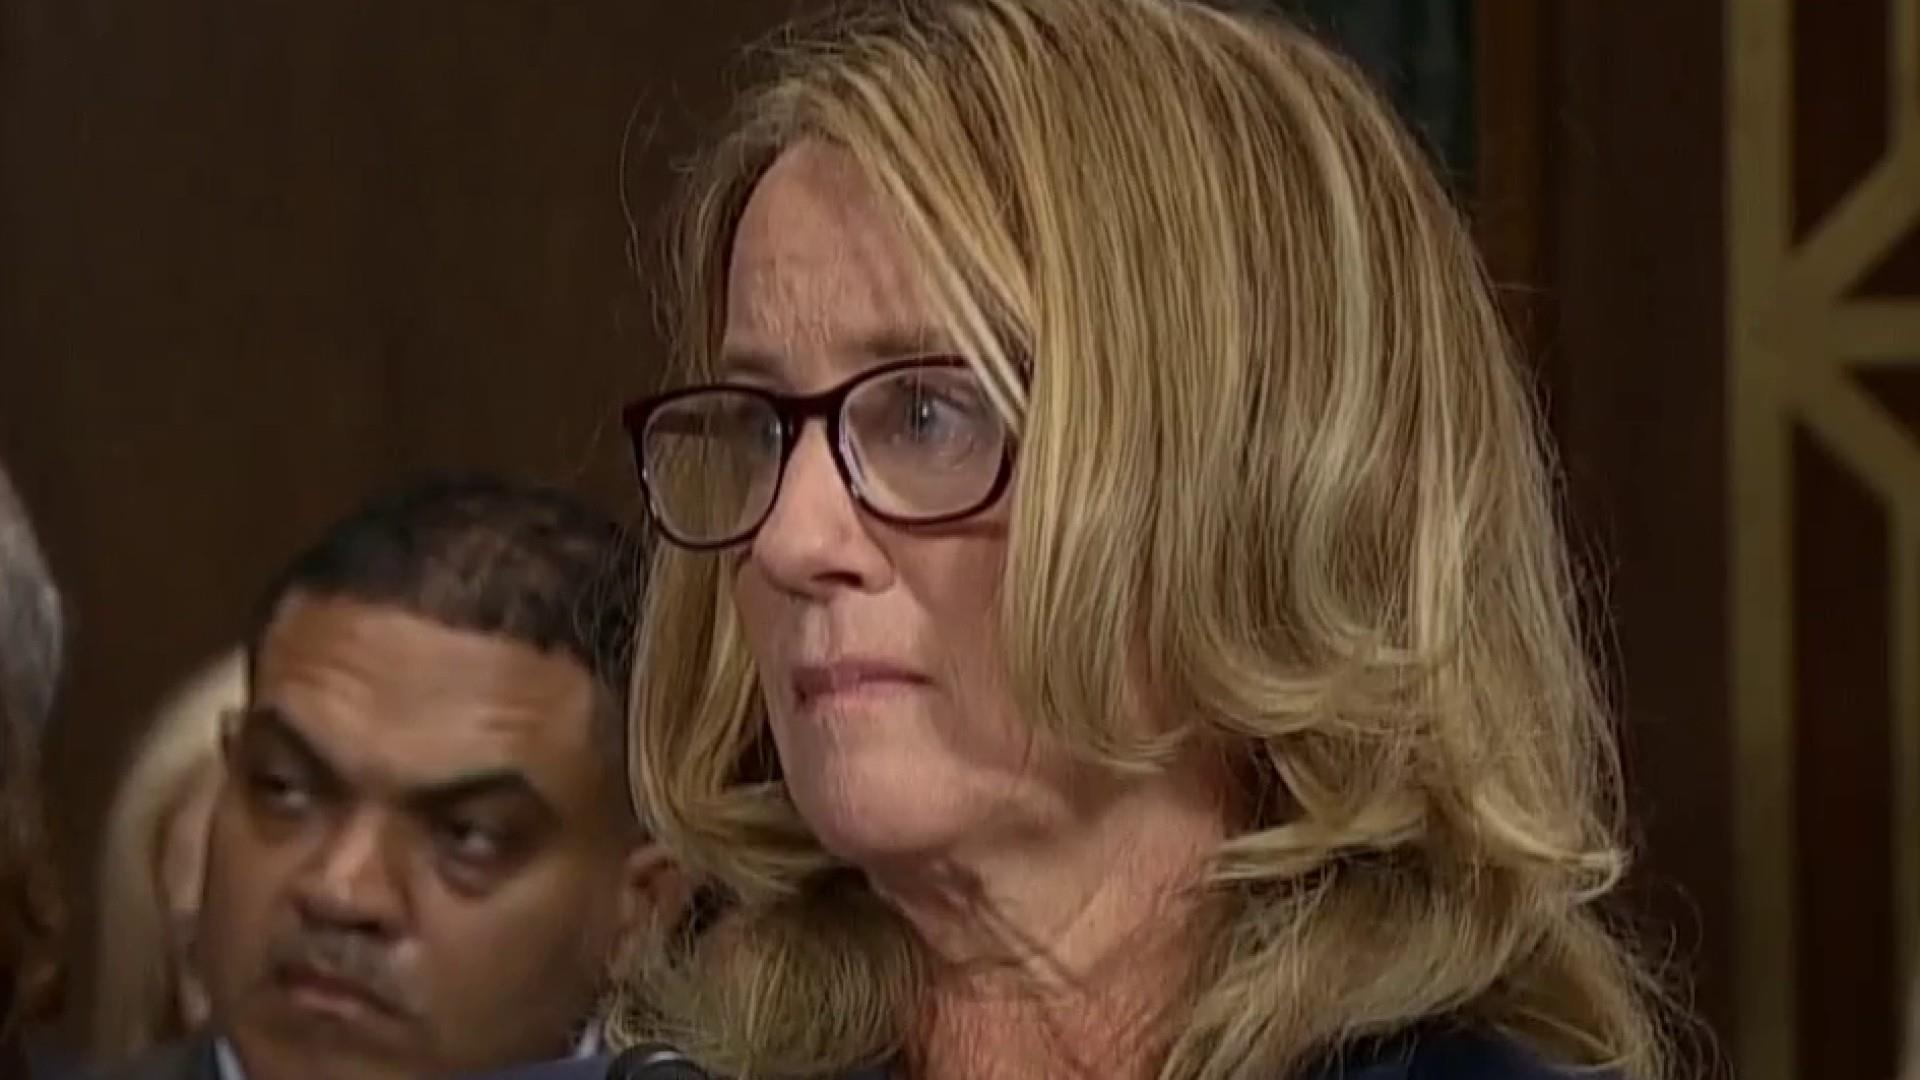 Dr. Blasey Ford welcomes FBI investigation, calls it 'critical'